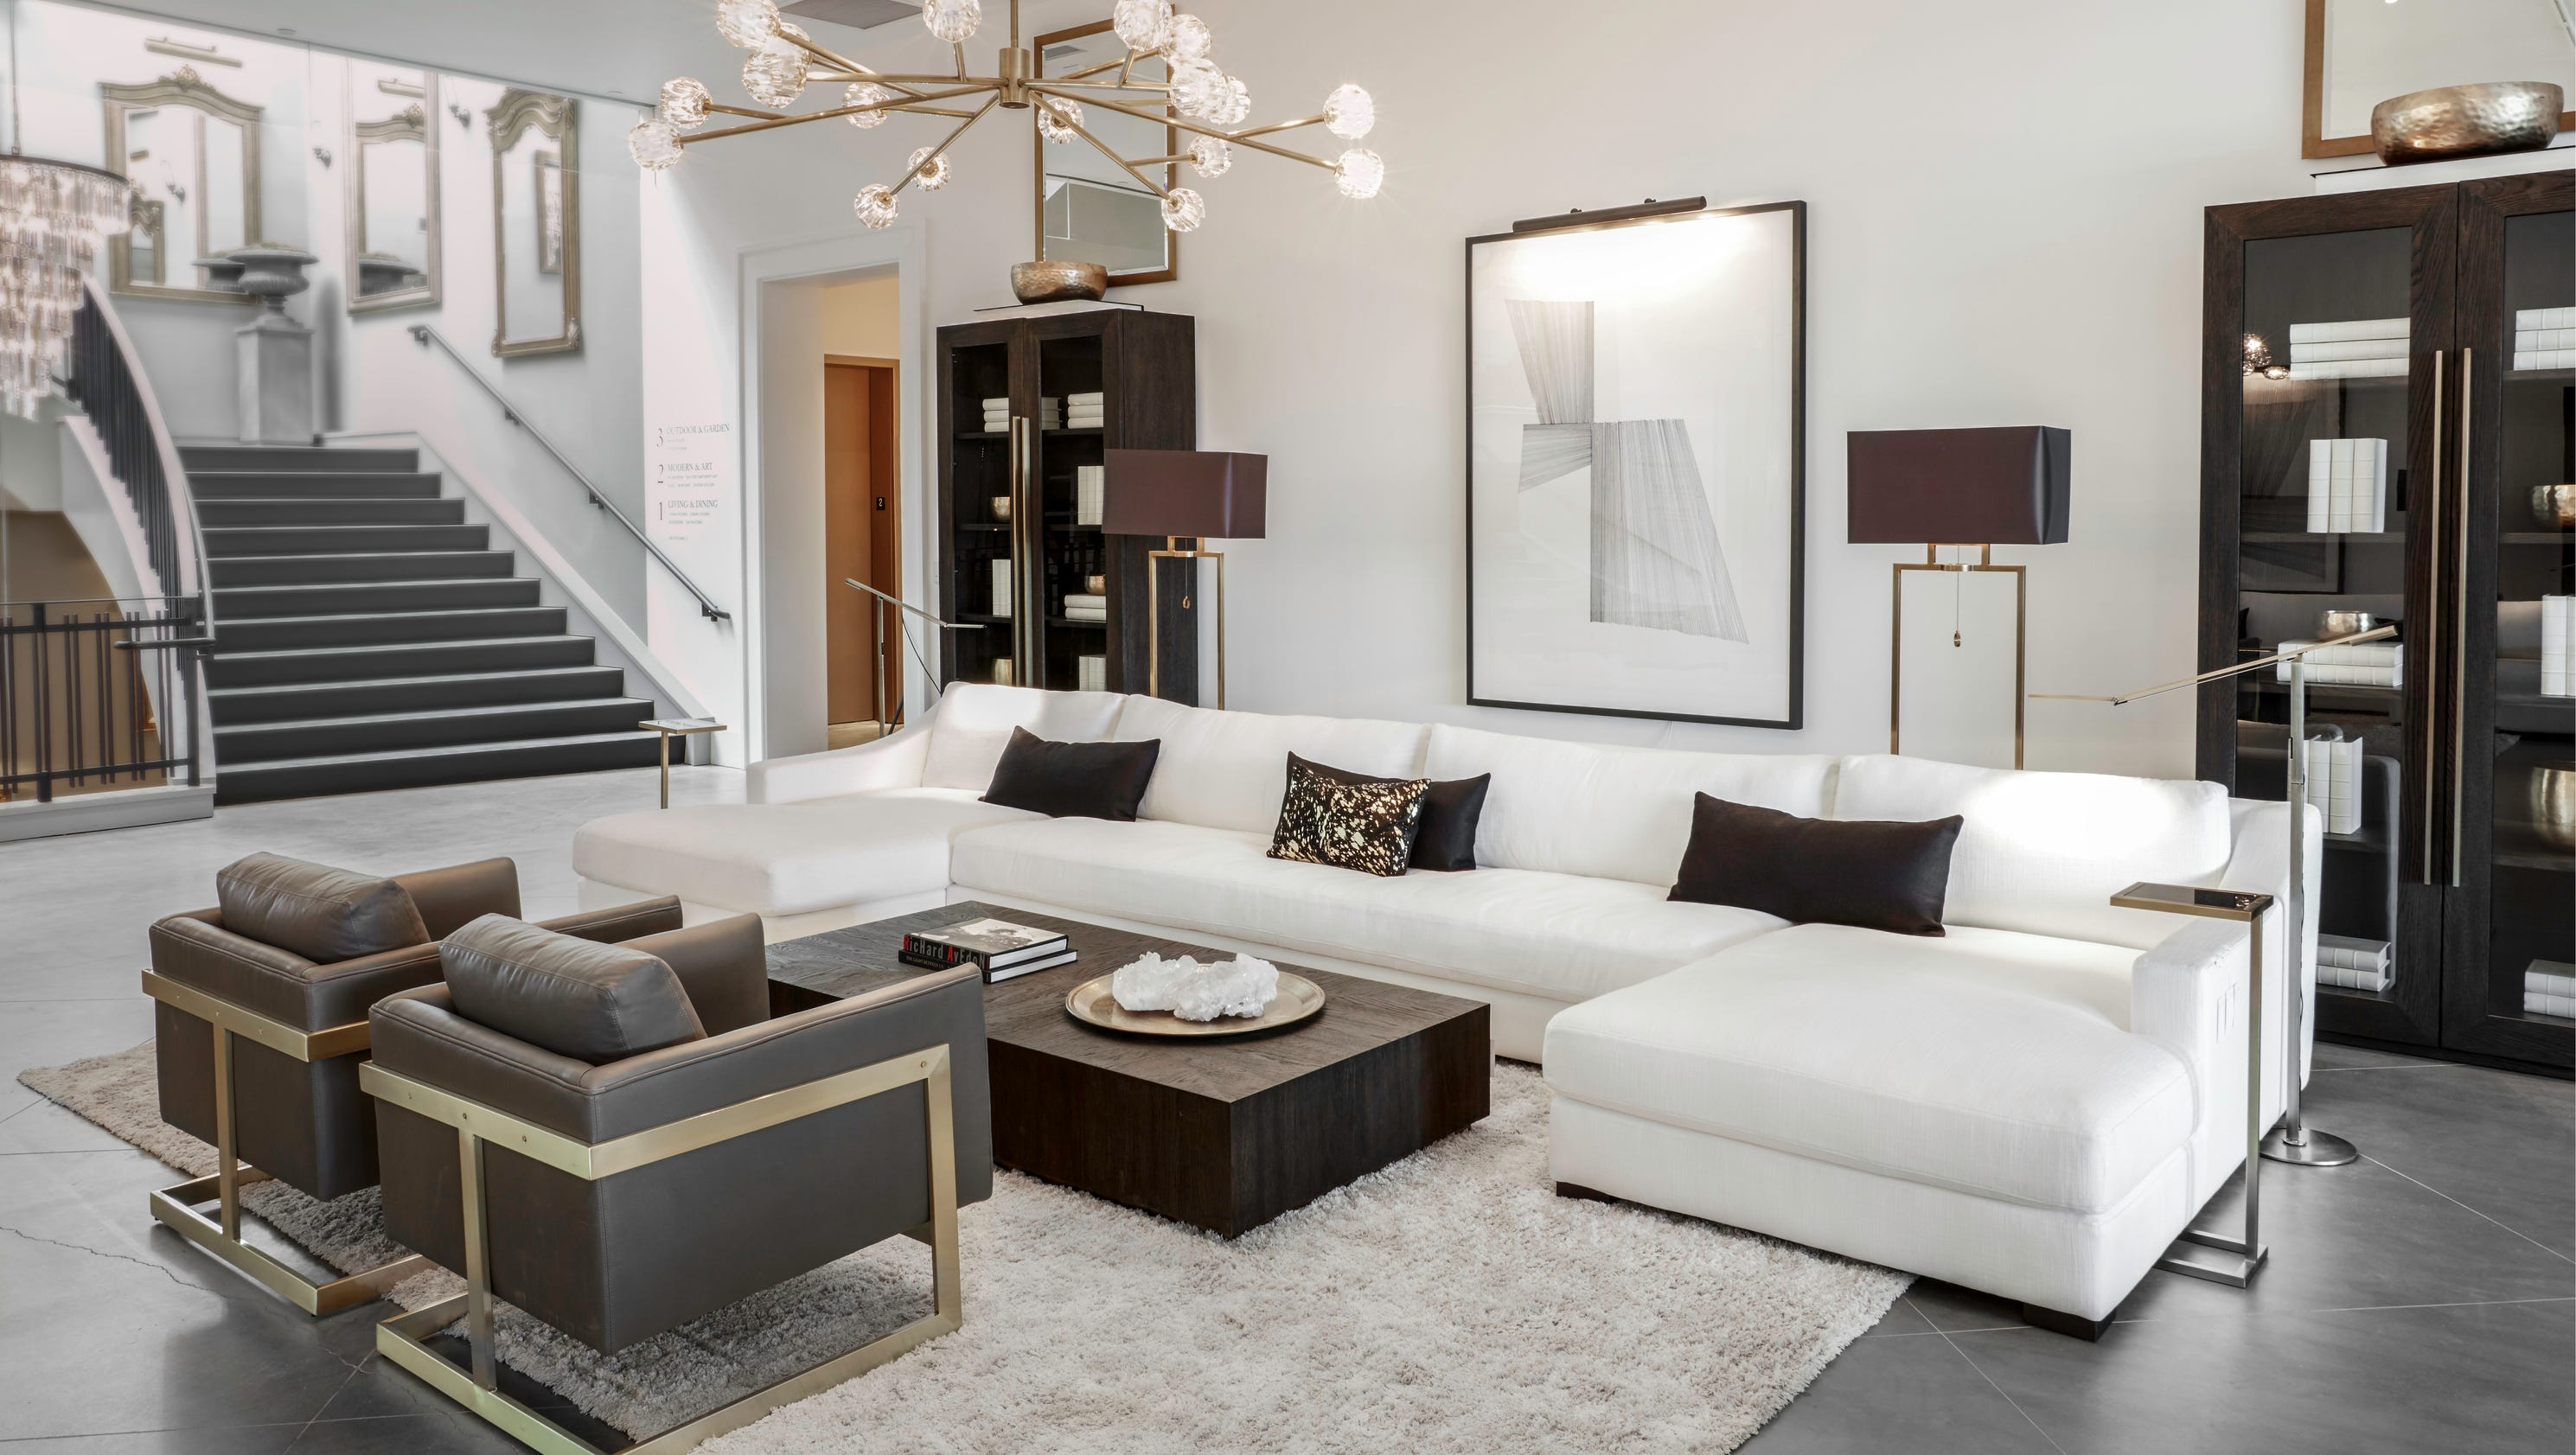 3 Bedroom Mobile Homes Inspired Interiors Restoration Hardware Launches Modern